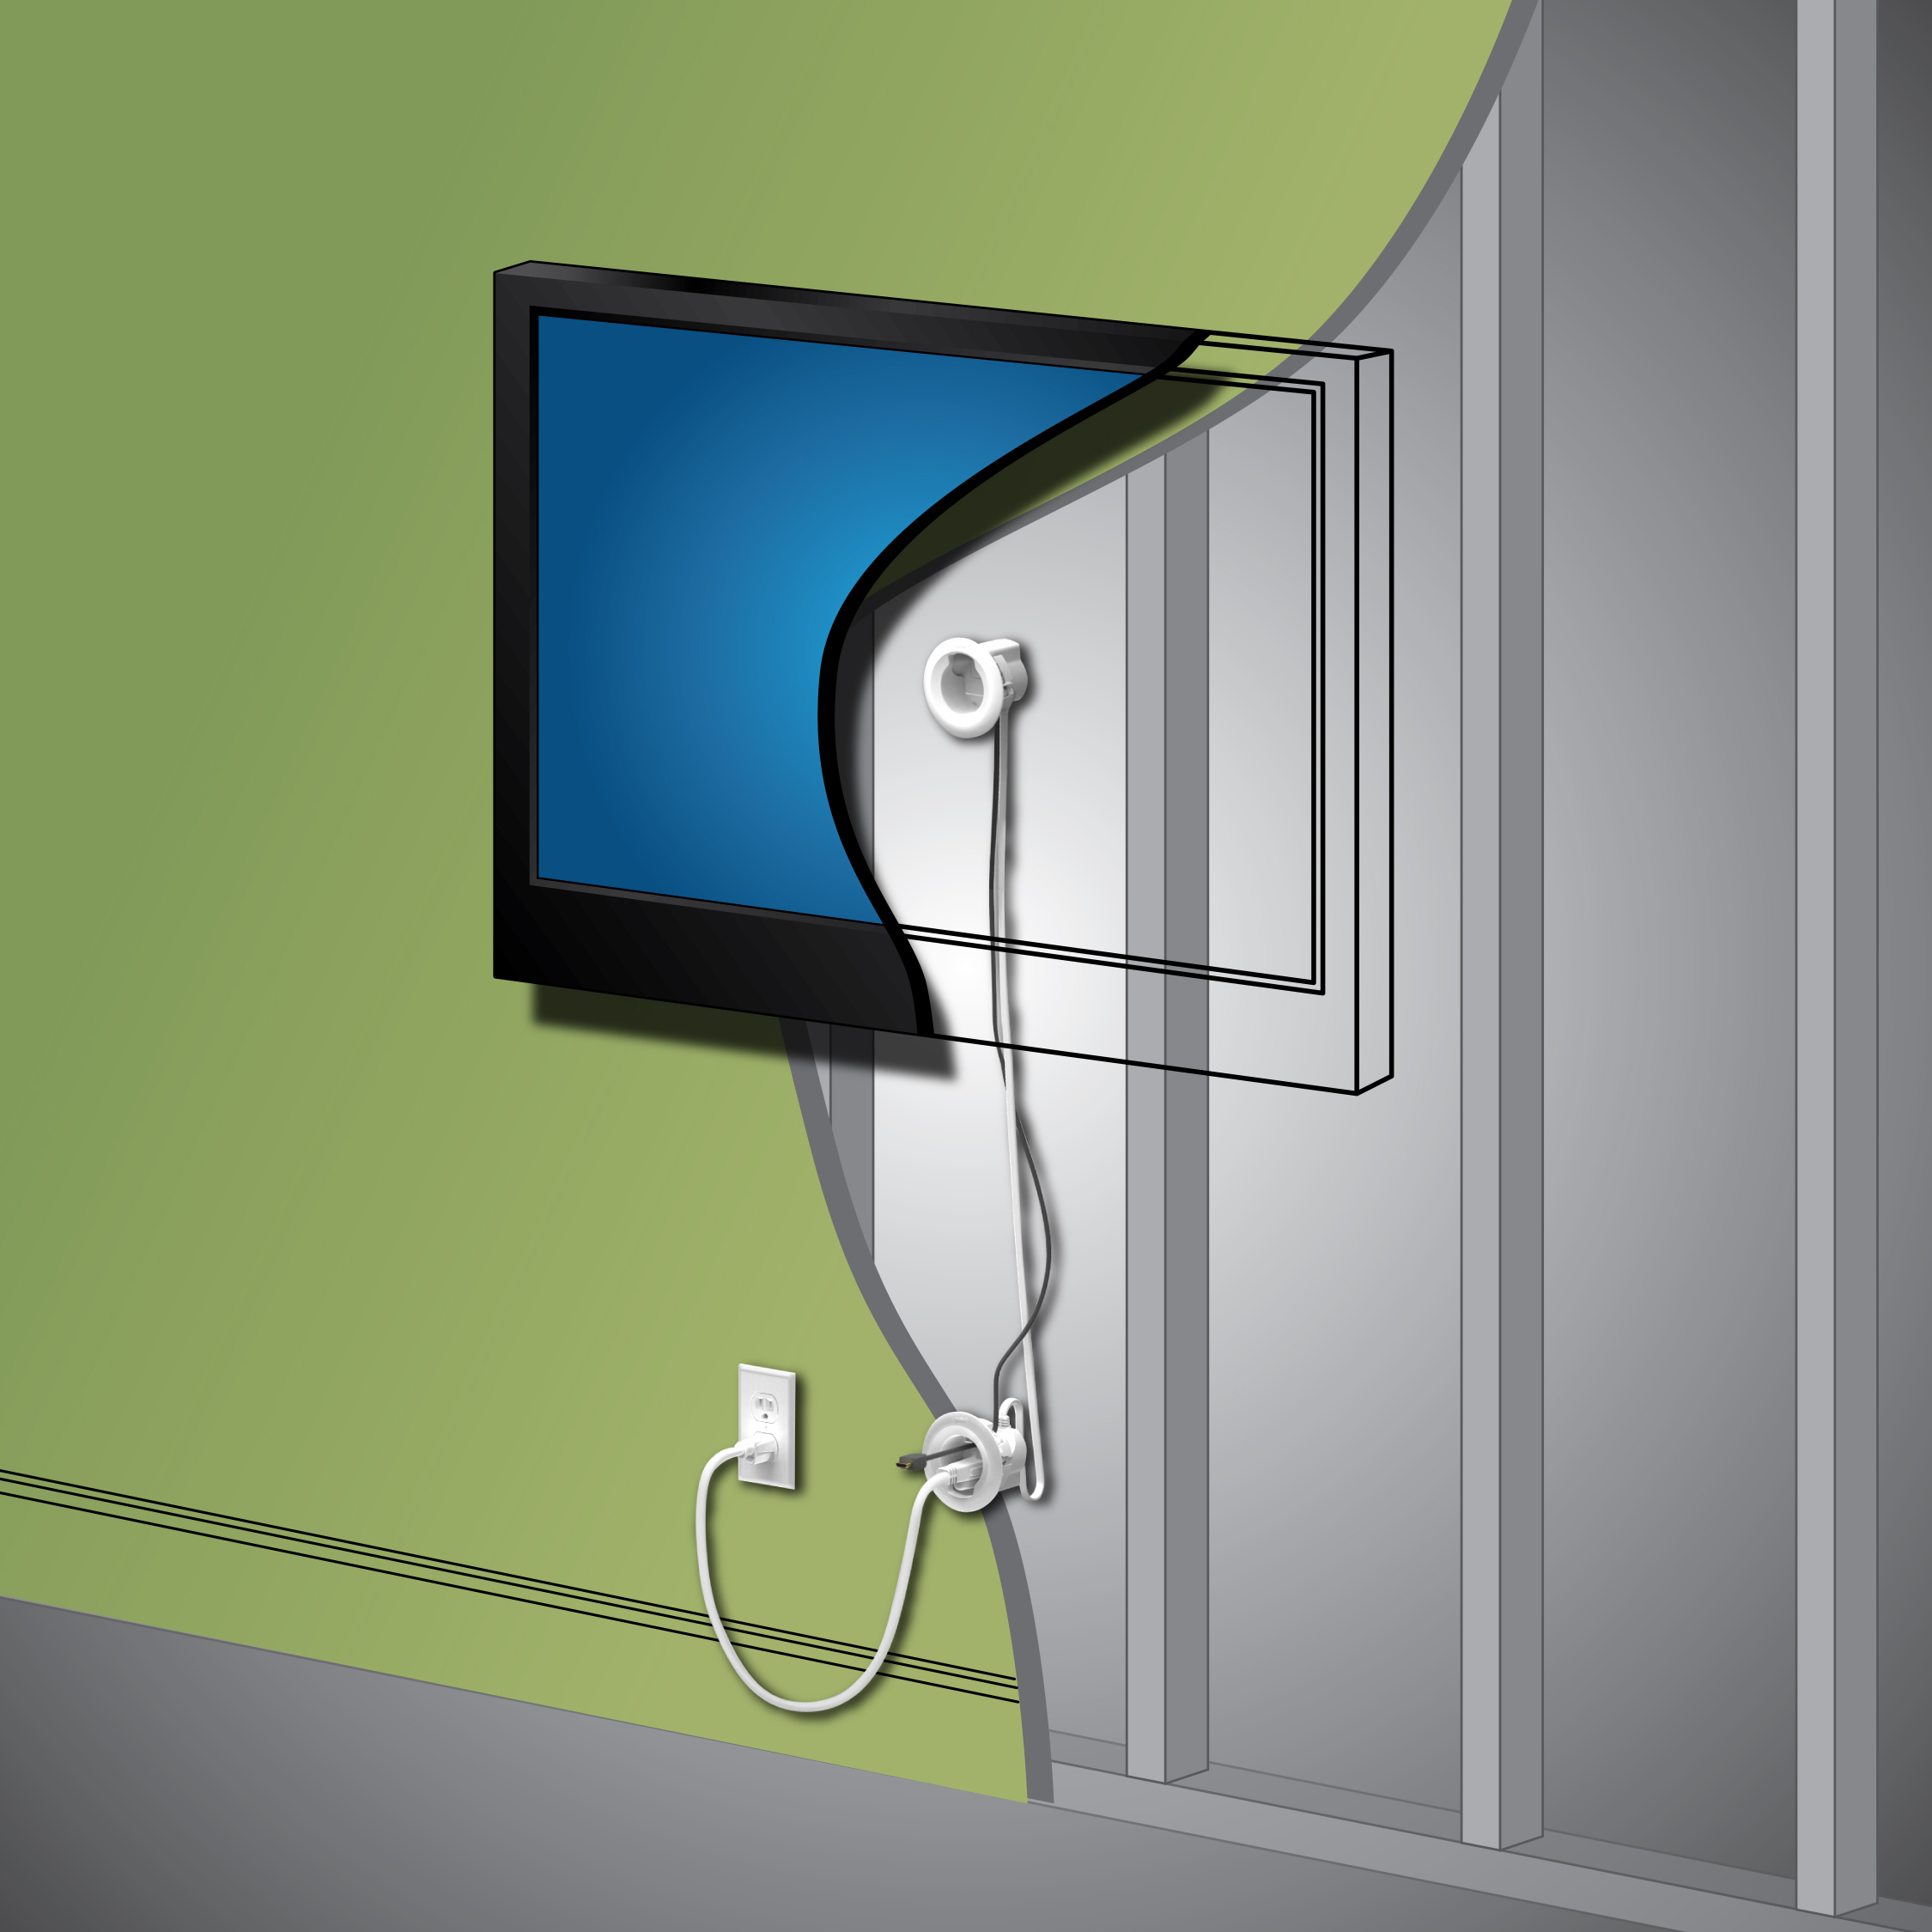 The Legrand In Wall Power Kit Review: Hide TV Cords From Sight!